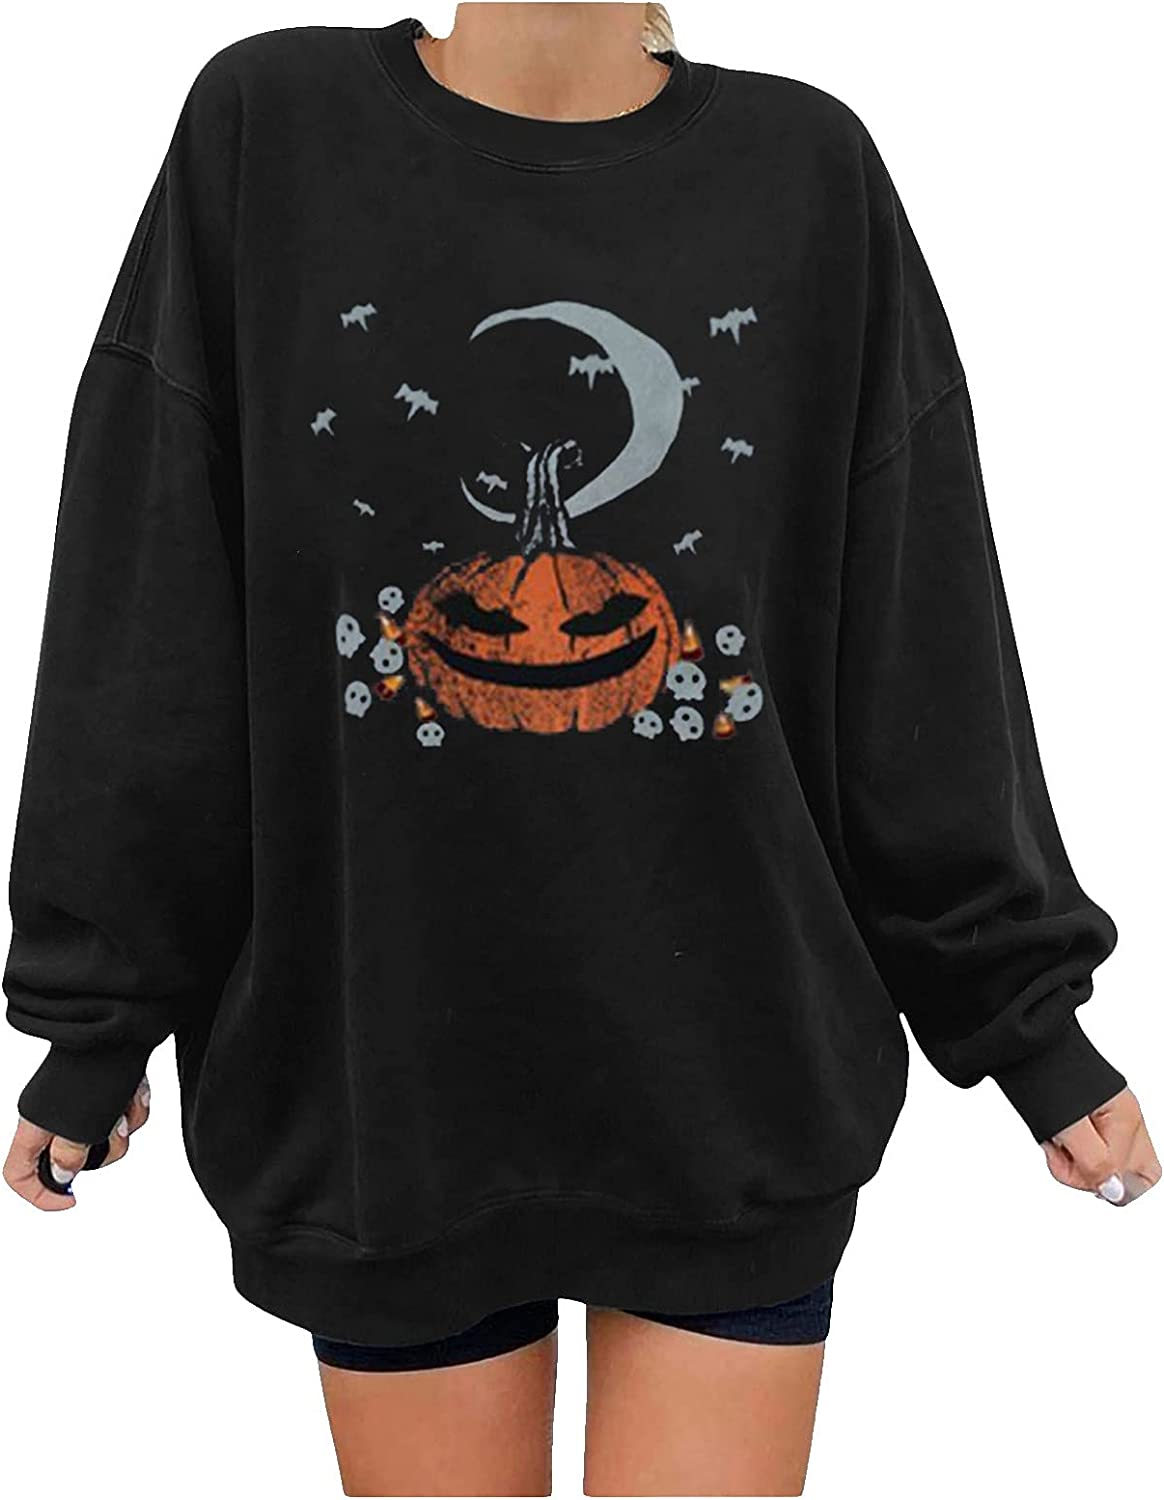 Woman Oversized Pumpkin Print Sweatershirt Halloween Loose Pullover Blouse Plus Size O Neck Long Sleeve Slouchy Tops